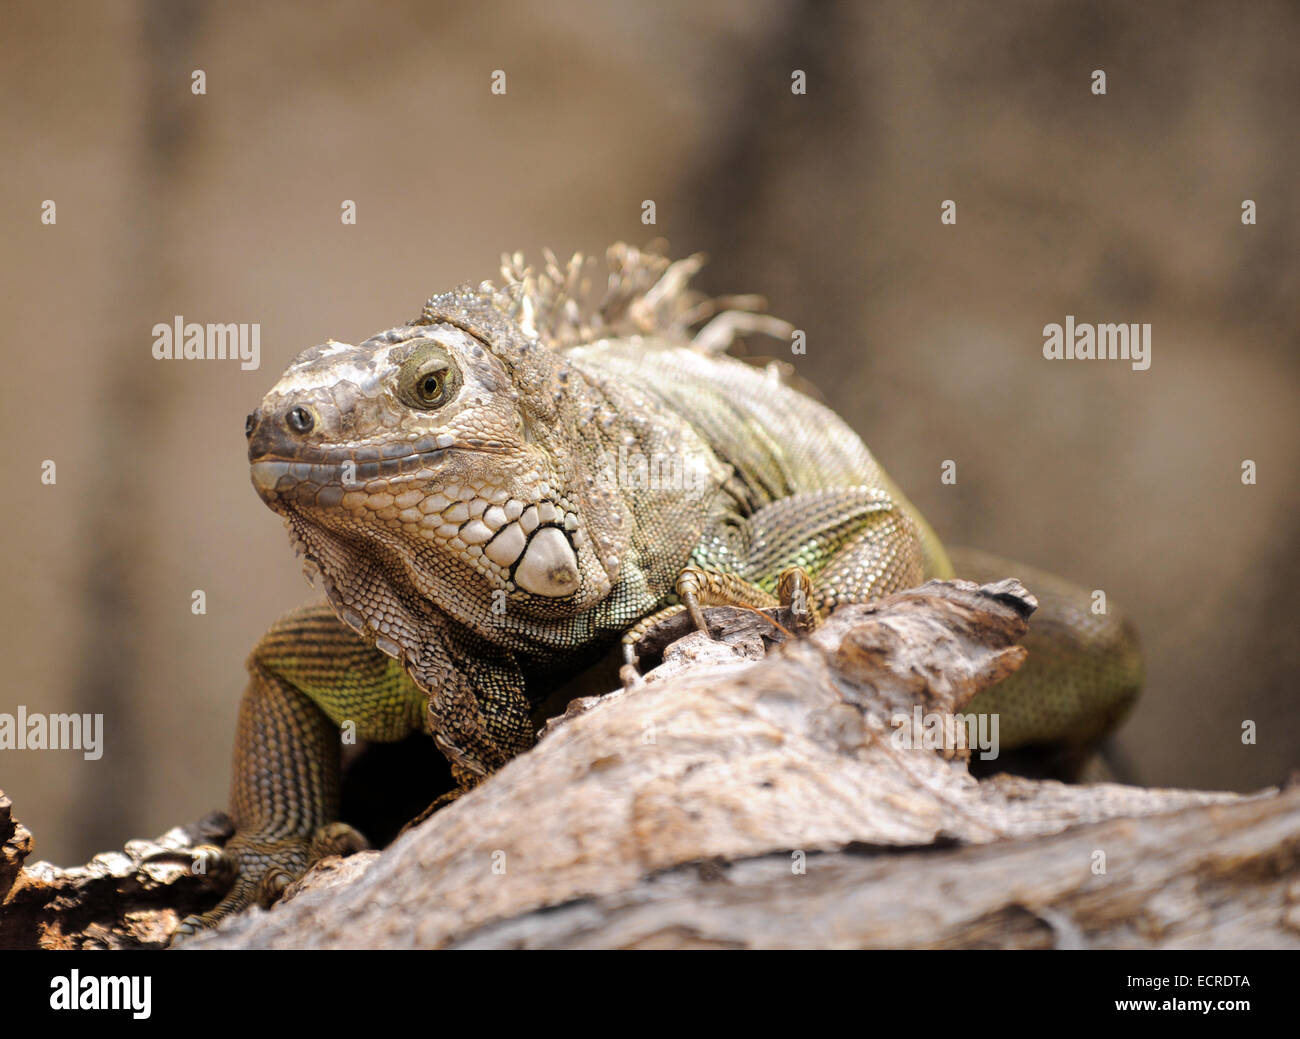 Close up view of exotic lizard on rock Stock Photo